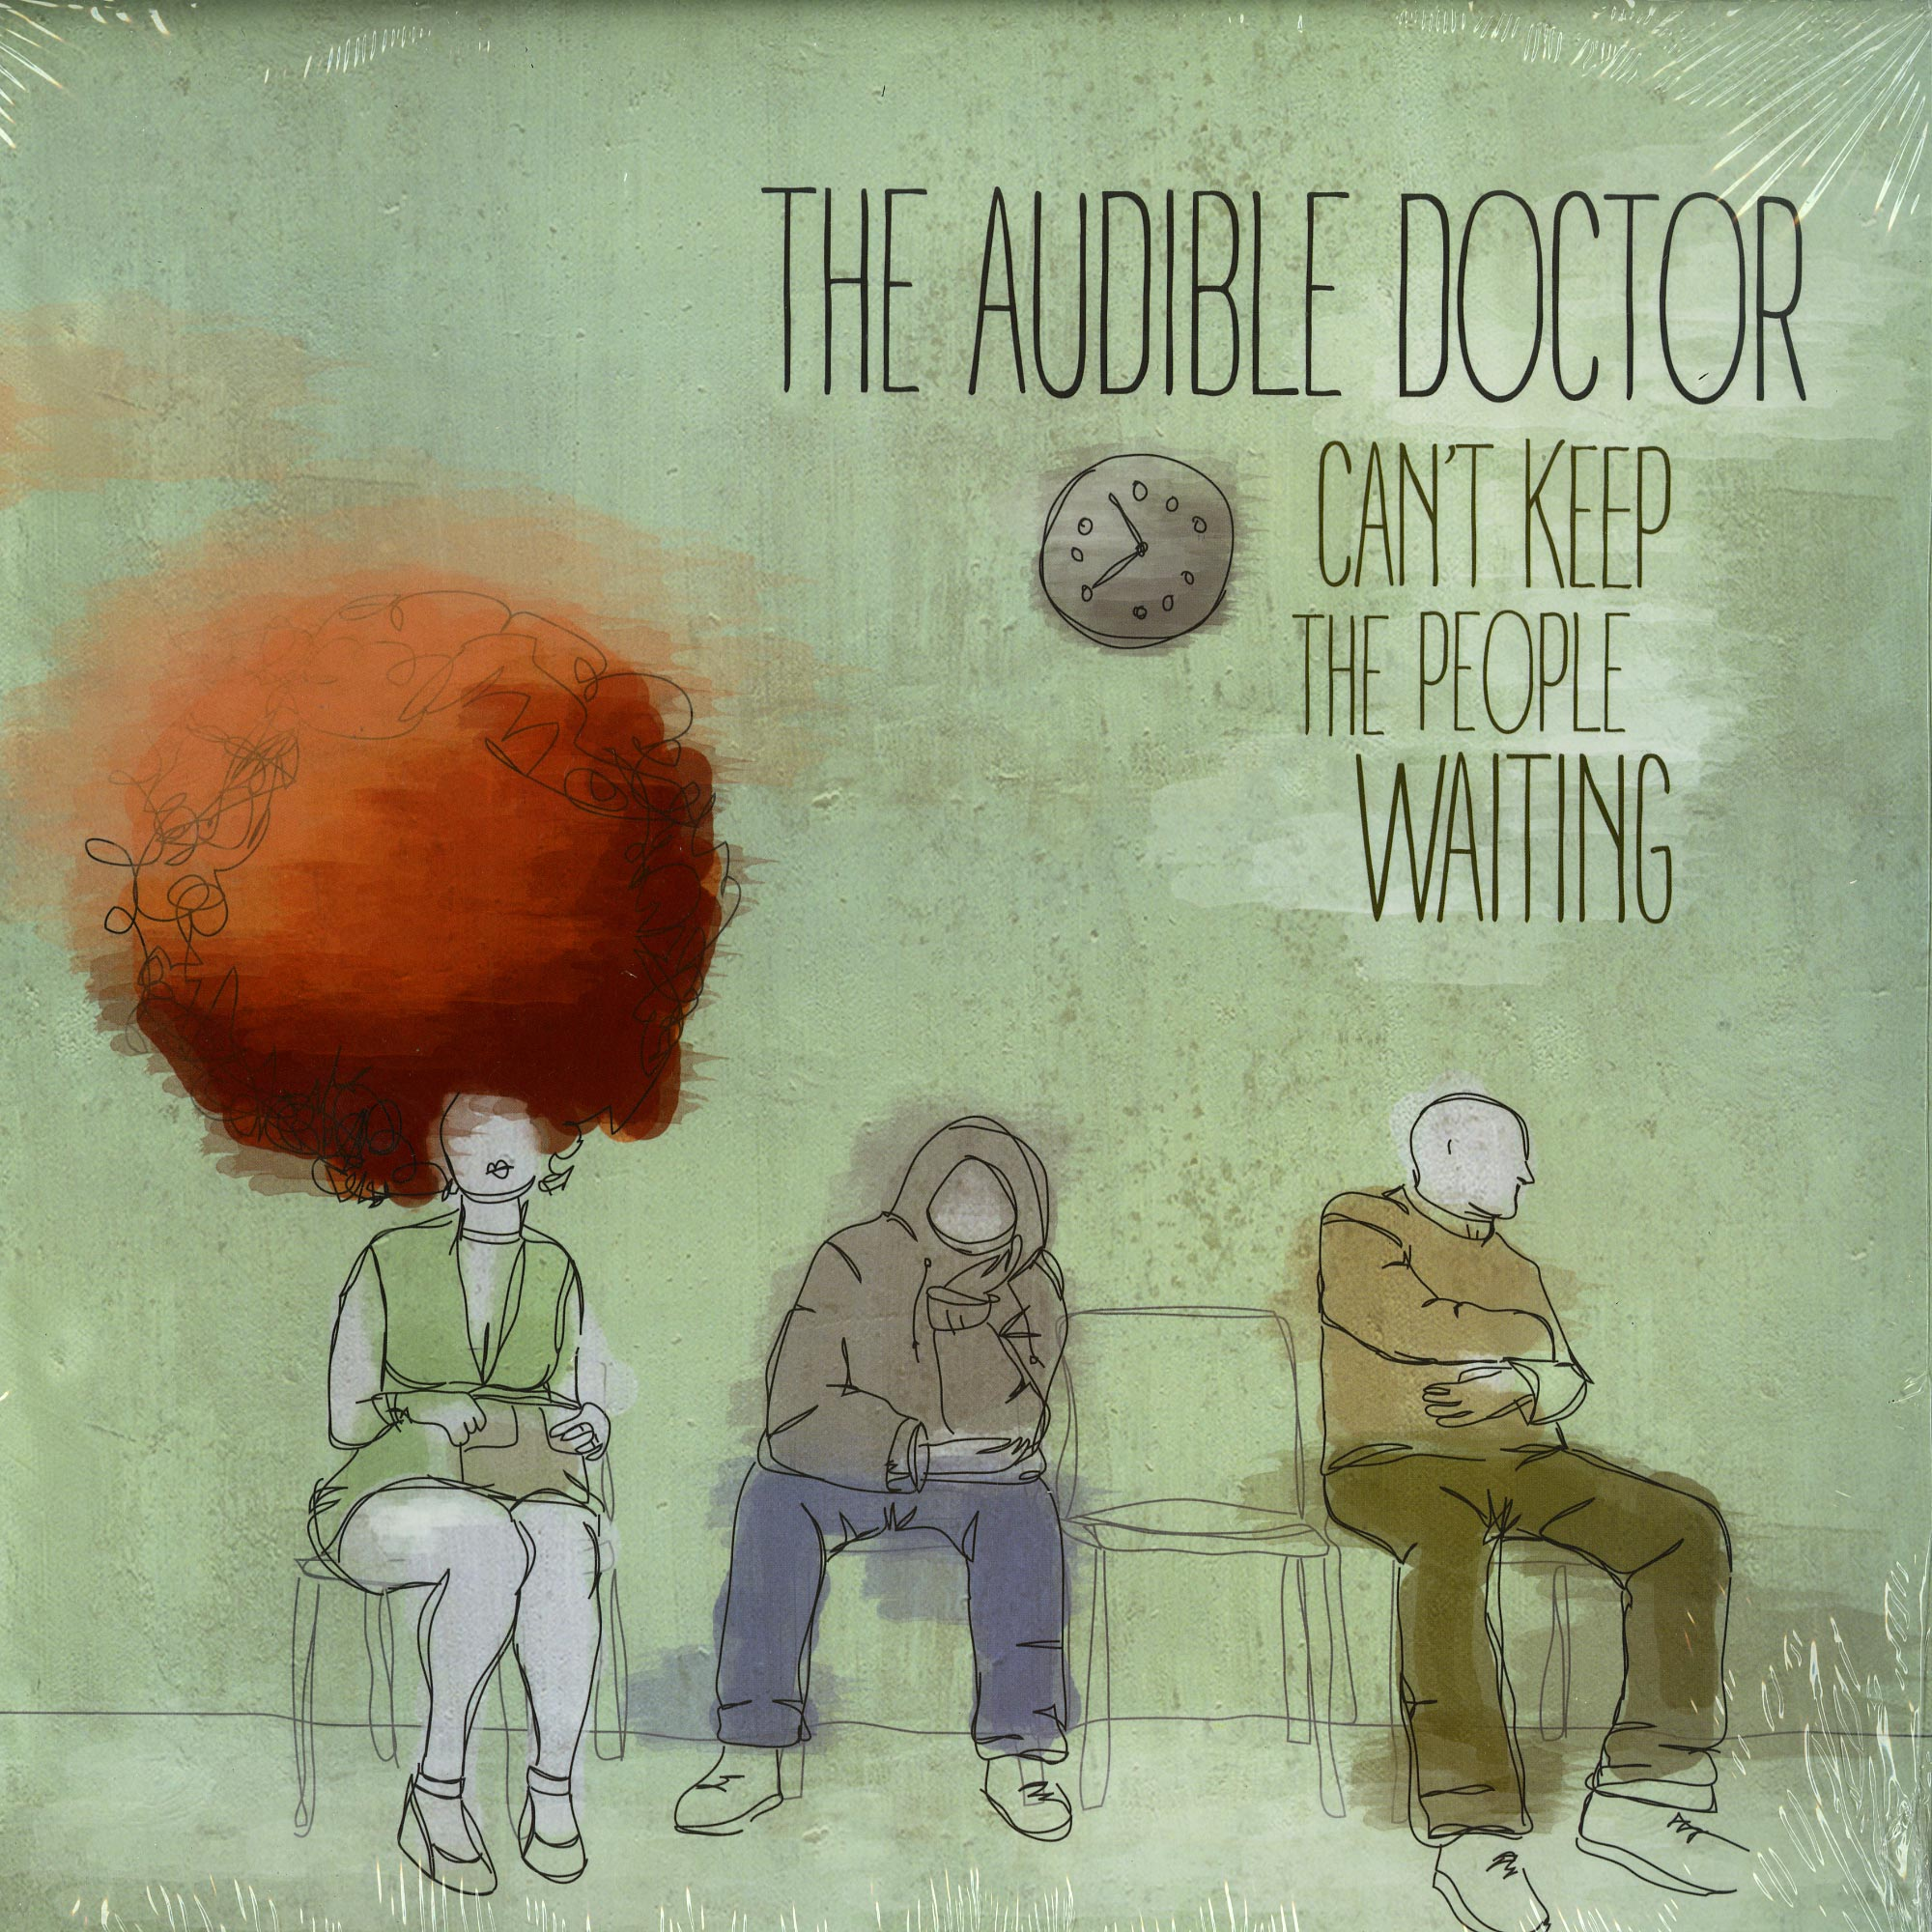 The Audible Doctor - CANT KEEP THE PEOPLE WAITING